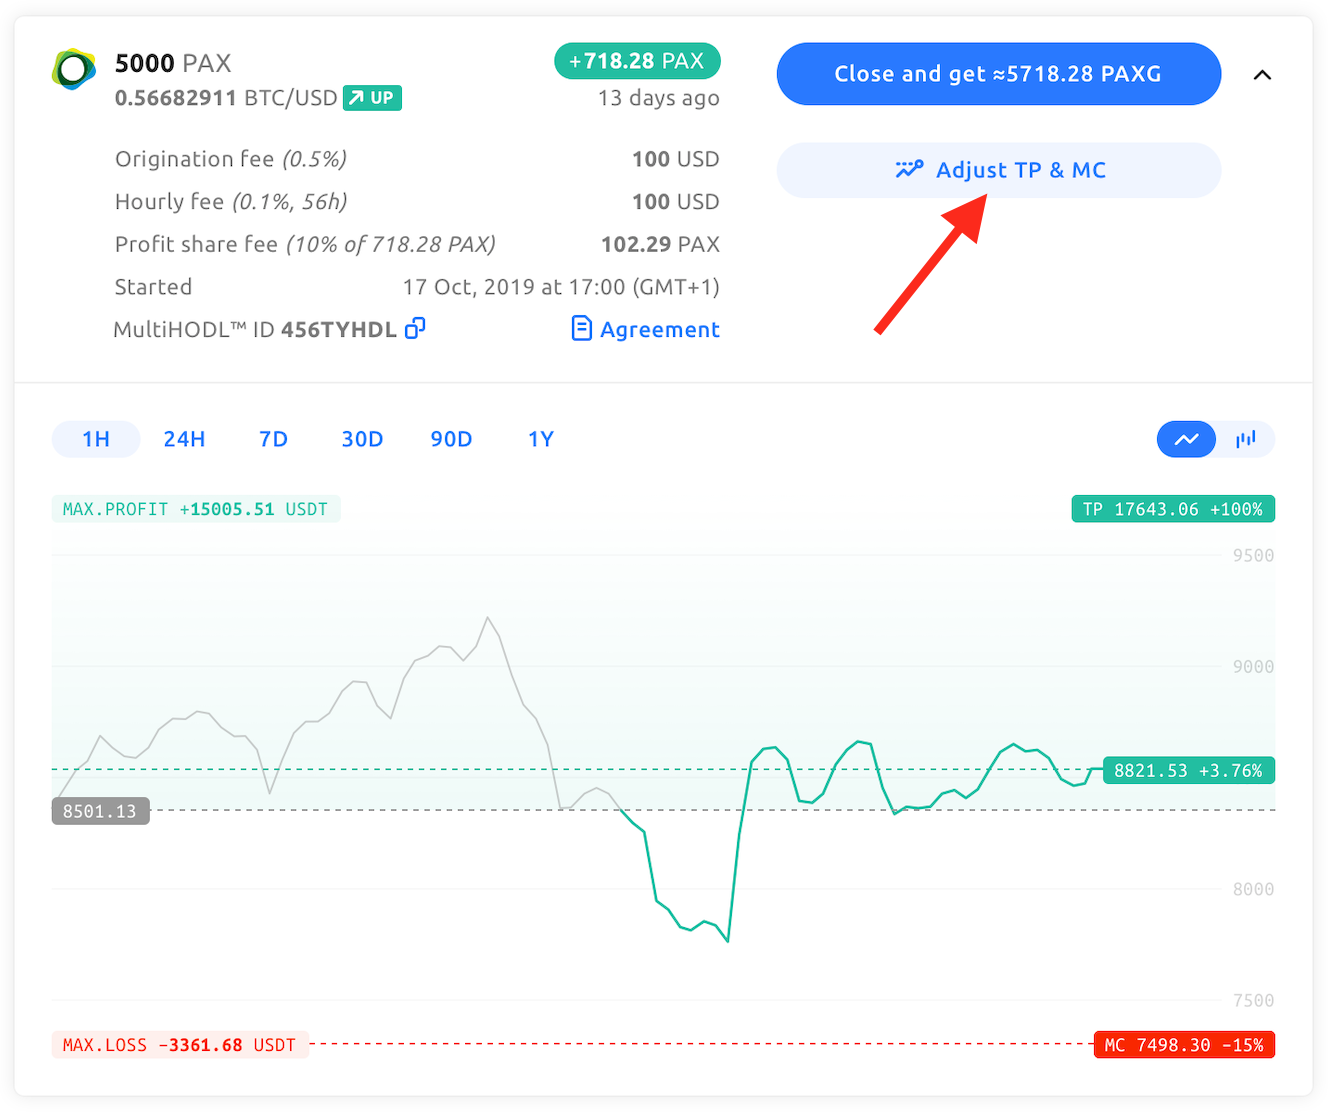 Screenshot showing how to adjust margin call and take profit levels. Click the button that says